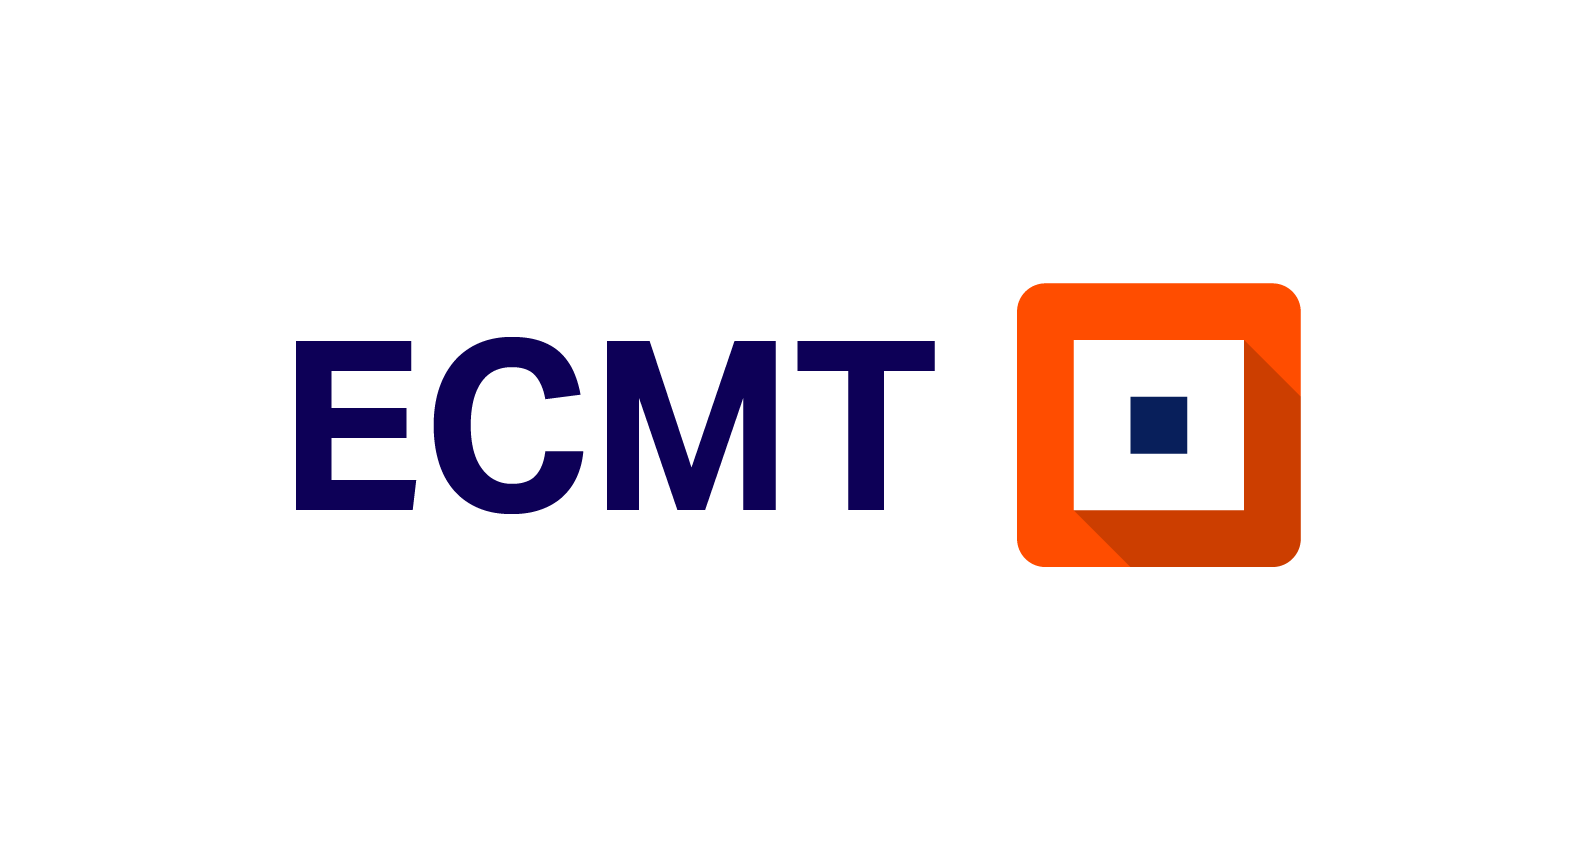 ECMT links.png